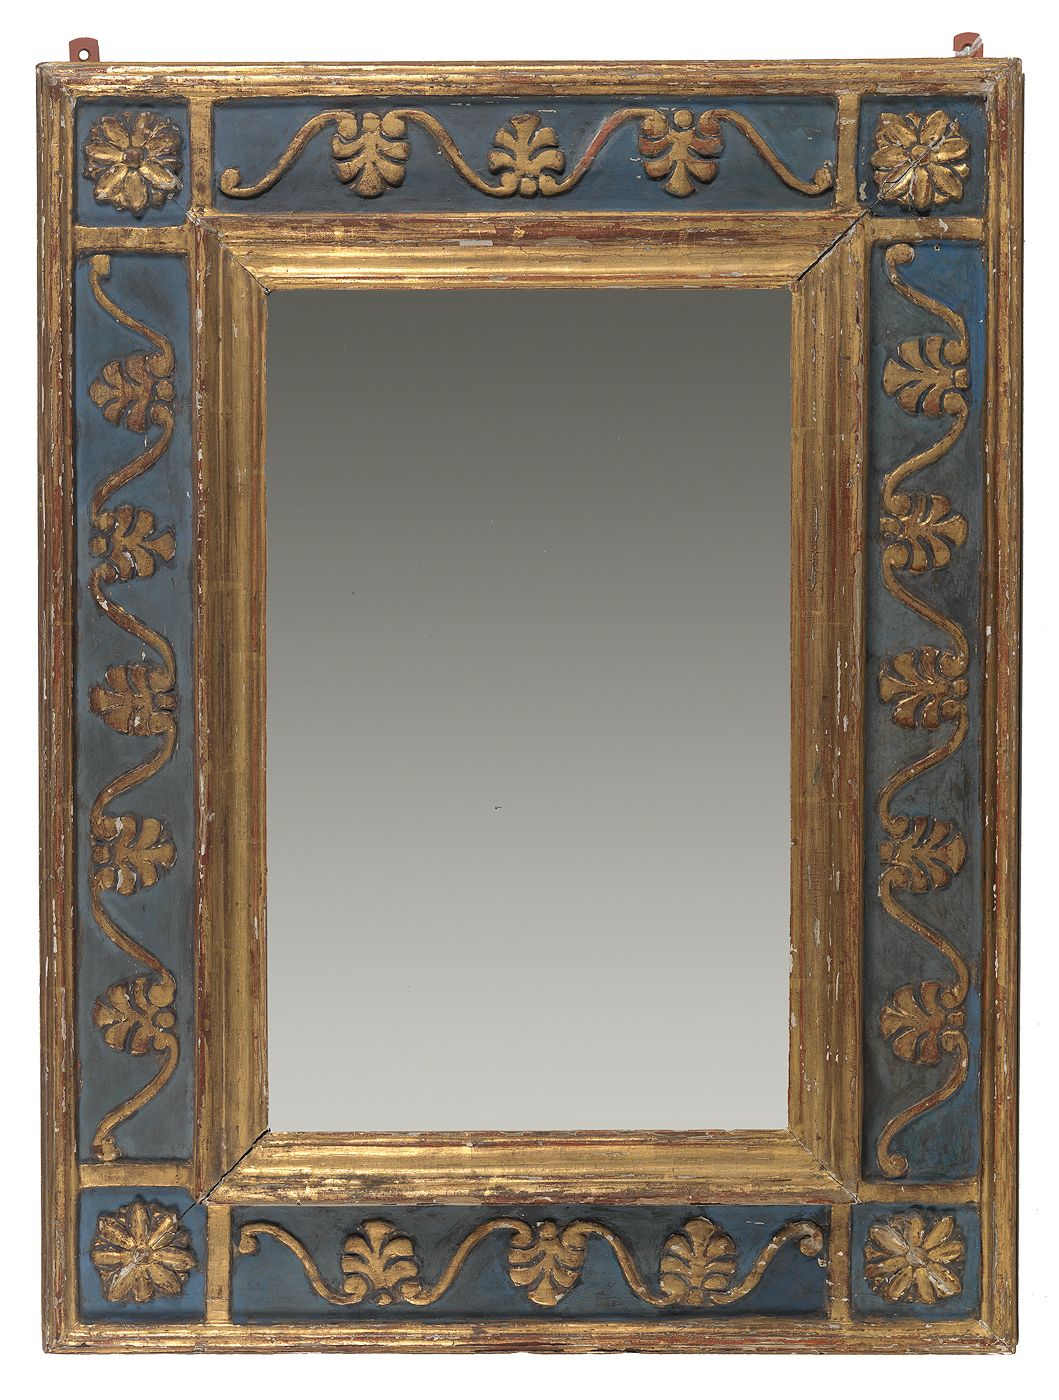 Mirror Frame by Charles Prendergast ca. 1907-1912 at Williams ...